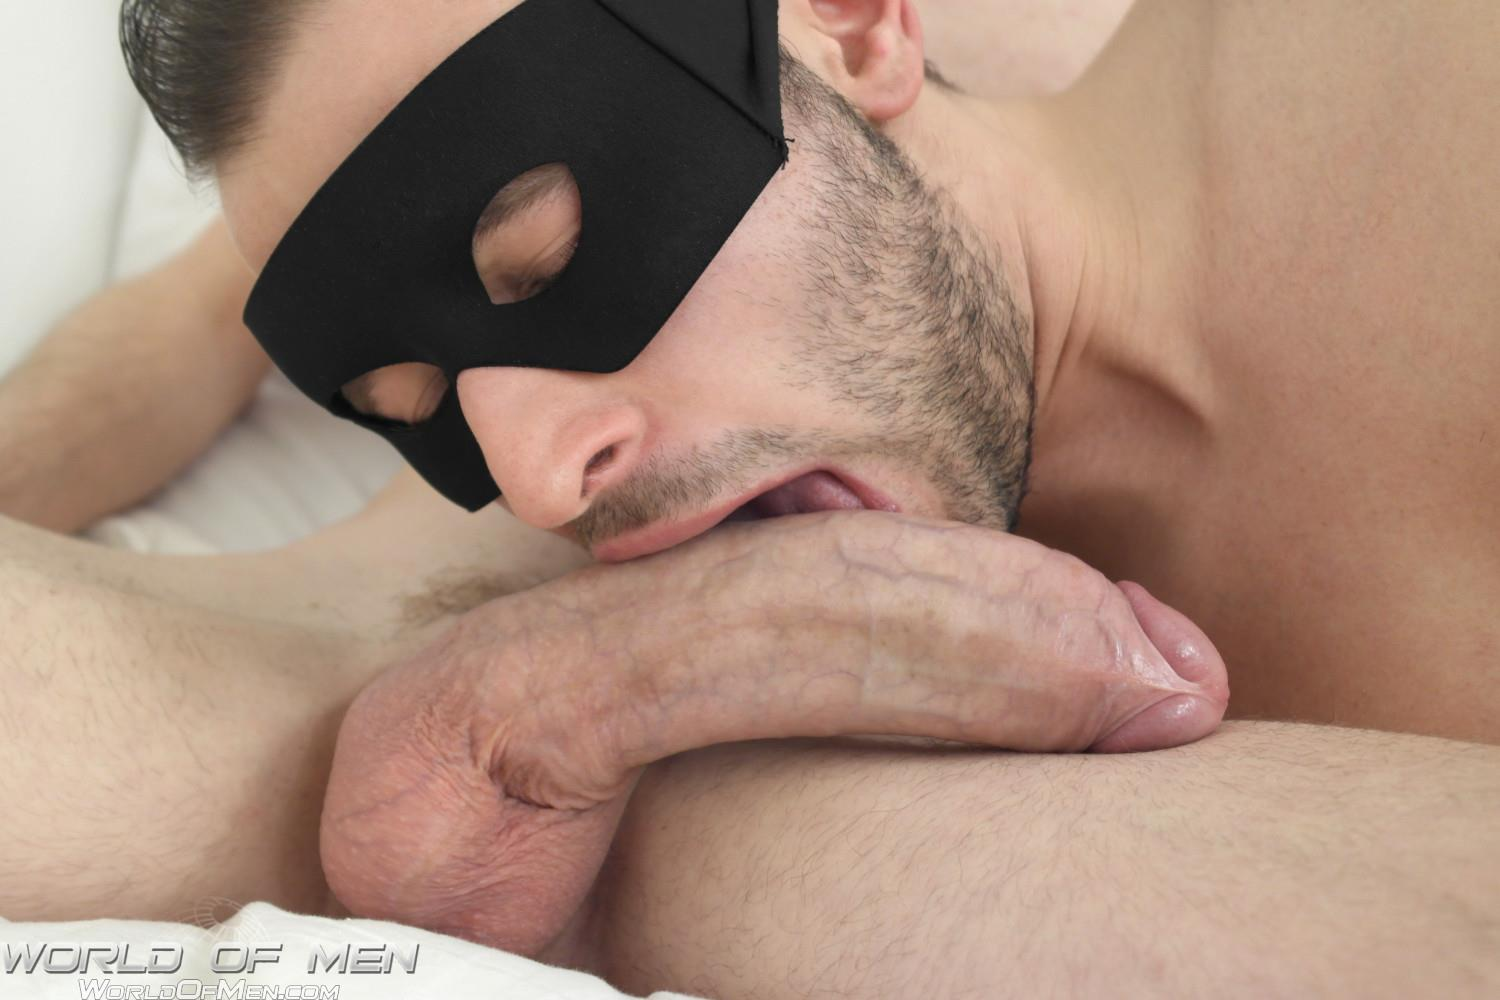 World-of-Men-Ralph-and-Bjorn-Big-Uncut-Cock-Fucking-Amateur-Gay-Porn-01 Married Virgin Masked Man Gets Fucked By A Huge Uncut Cock